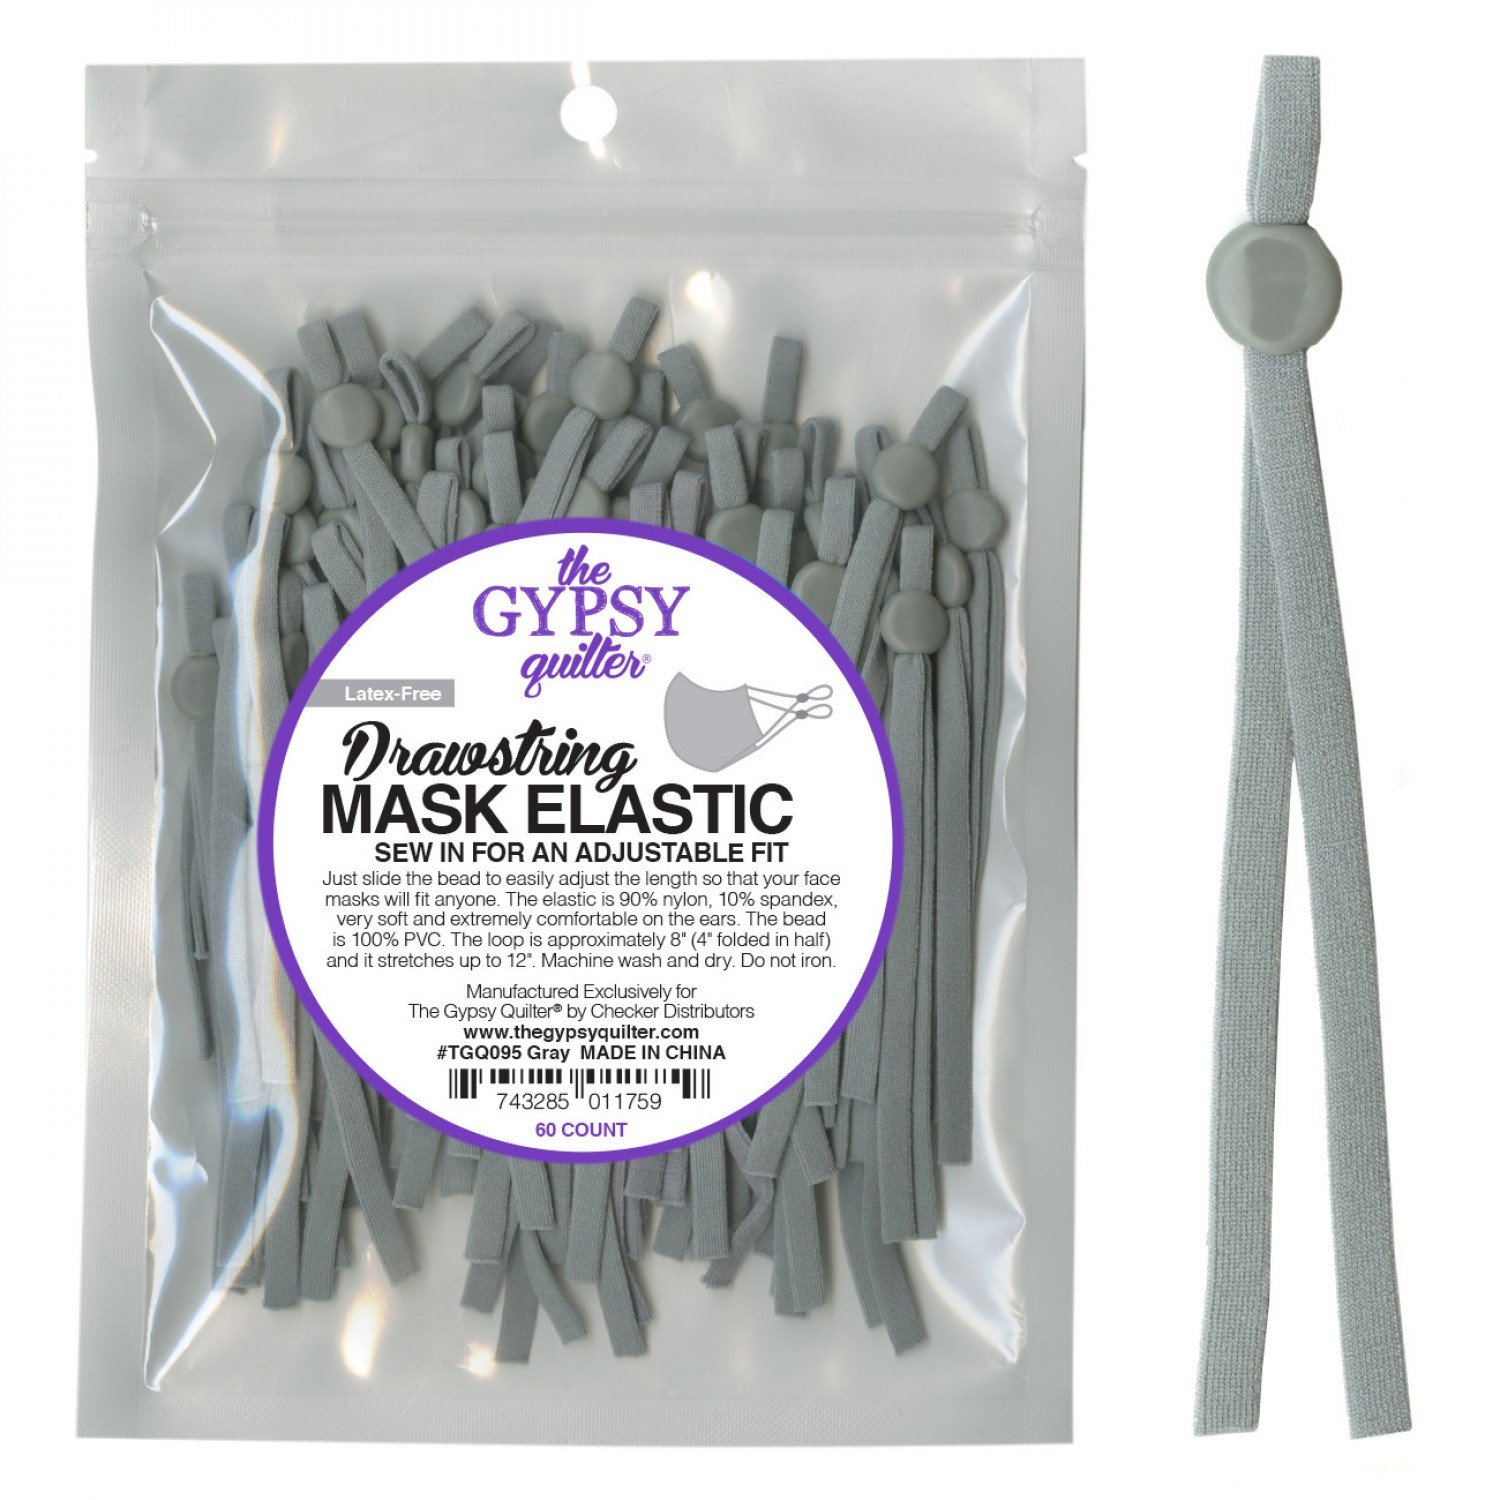 Drawstring Mask Elastic - 60 Count - TGQ095 Grey